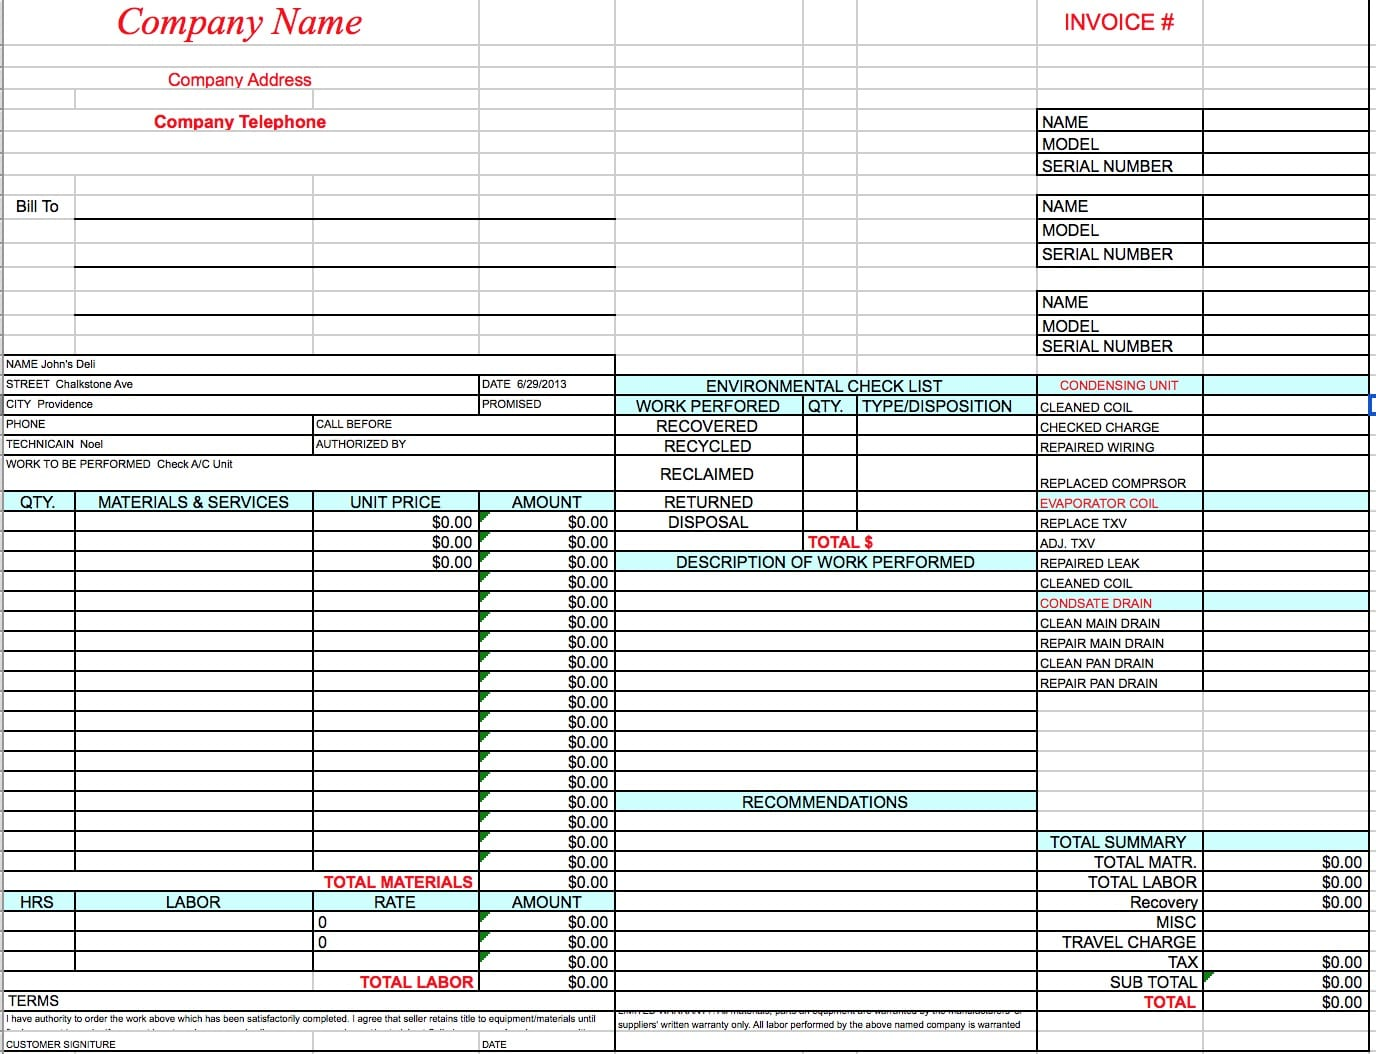 hvac service invoice template  Free HVAC Invoice Template | Excel | PDF | Word (.doc)